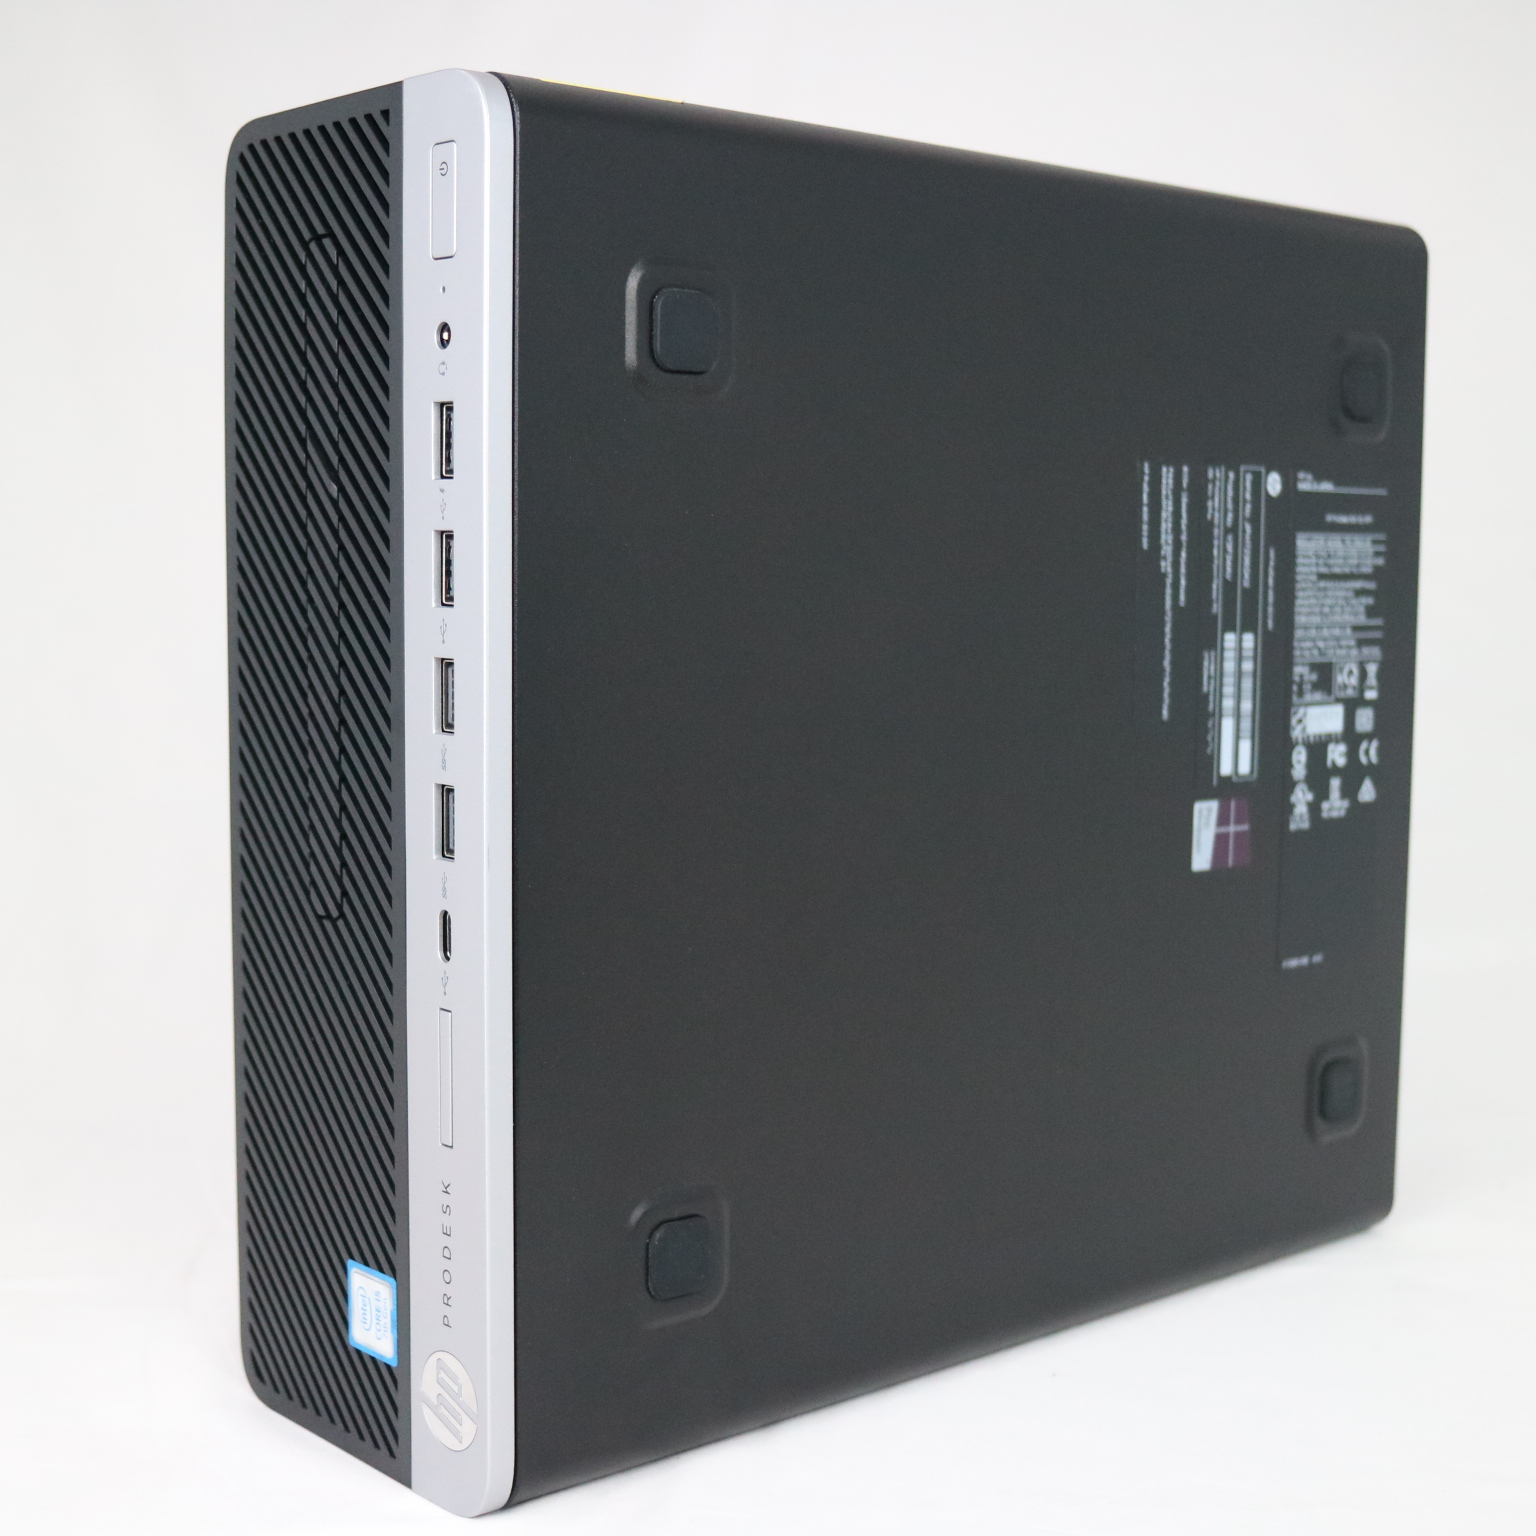 【Windows10】PRODESK 600 G3 SF/ Core i5-7500/ 3.4GHz/ 8GB/ HDD 500GB